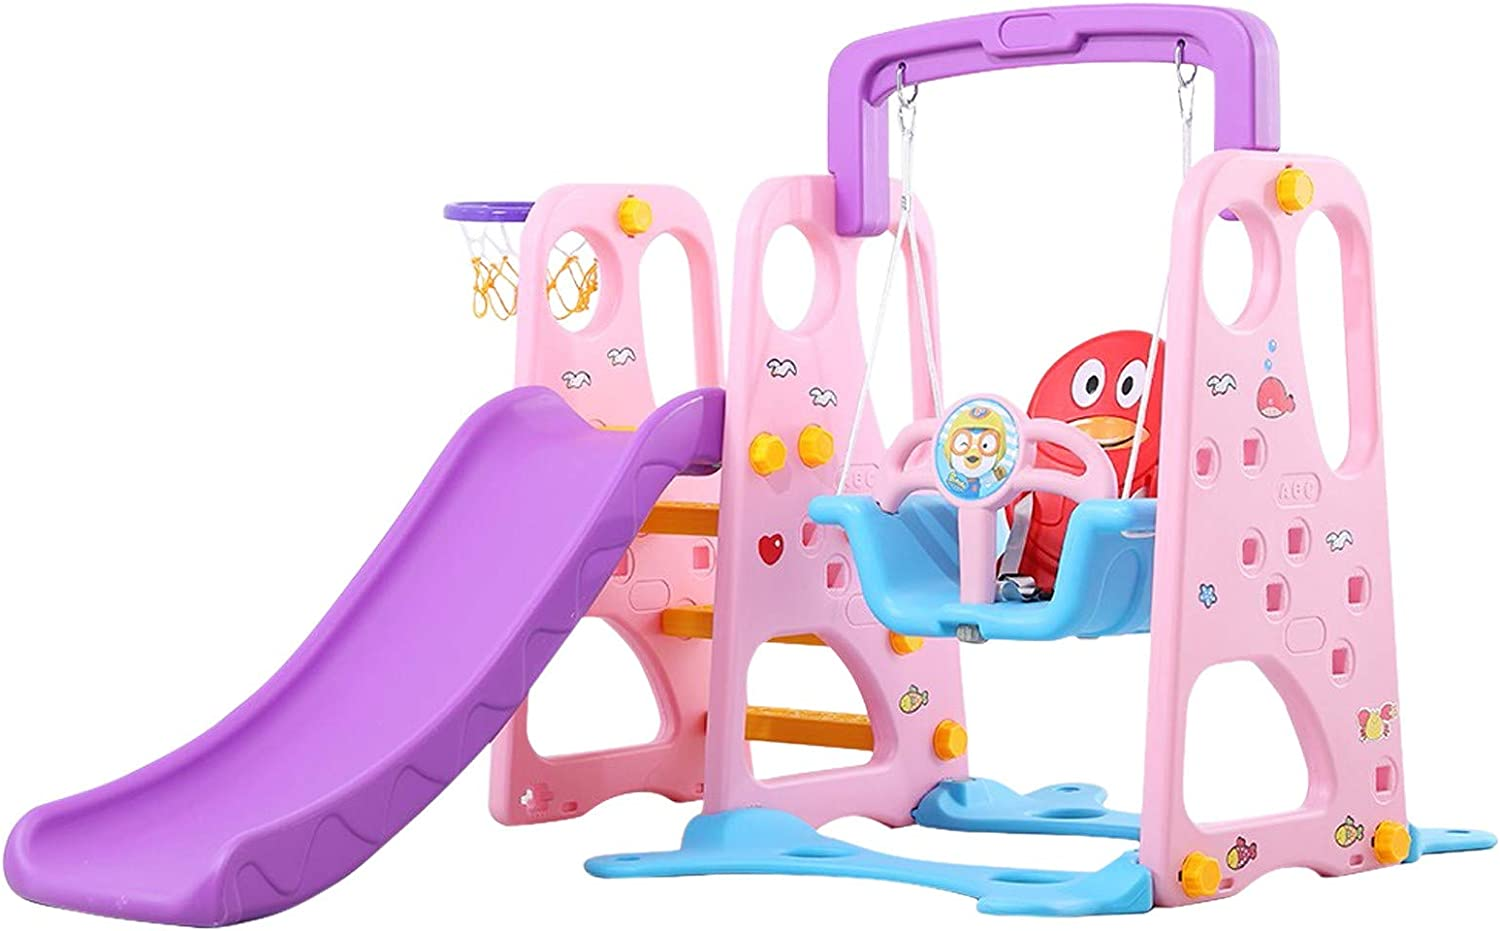 Toddler Slide and Swing Set, Climbing Stairs with Basketball Fra